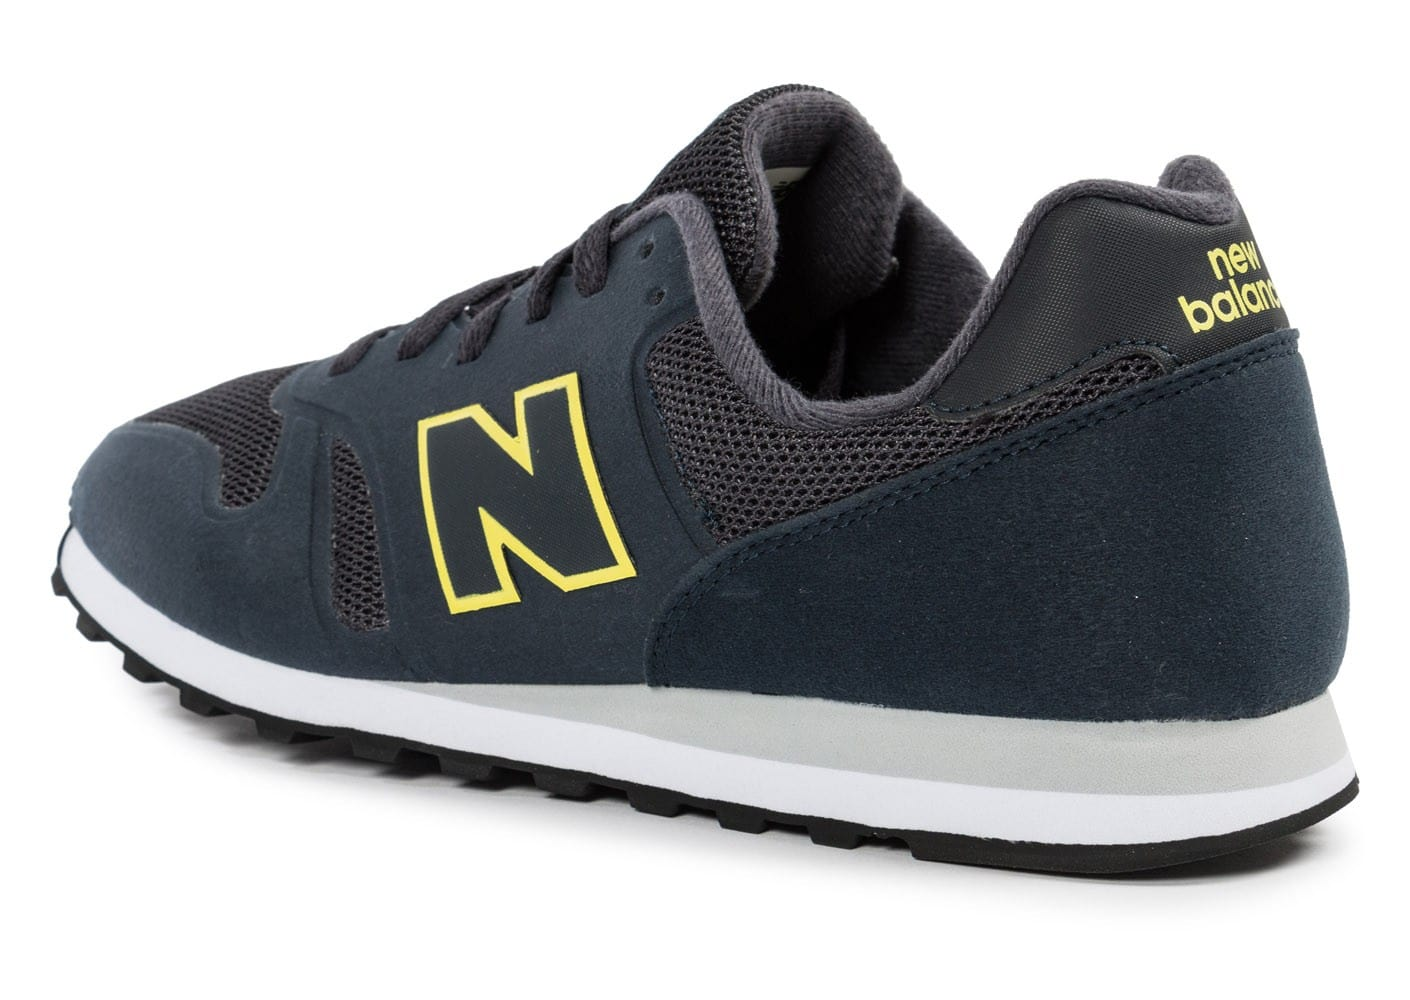 check out 2b10e aab51 0538-chaussures-new-balance-md373-ny-bleu-marine-vue-arriere 1.jpg